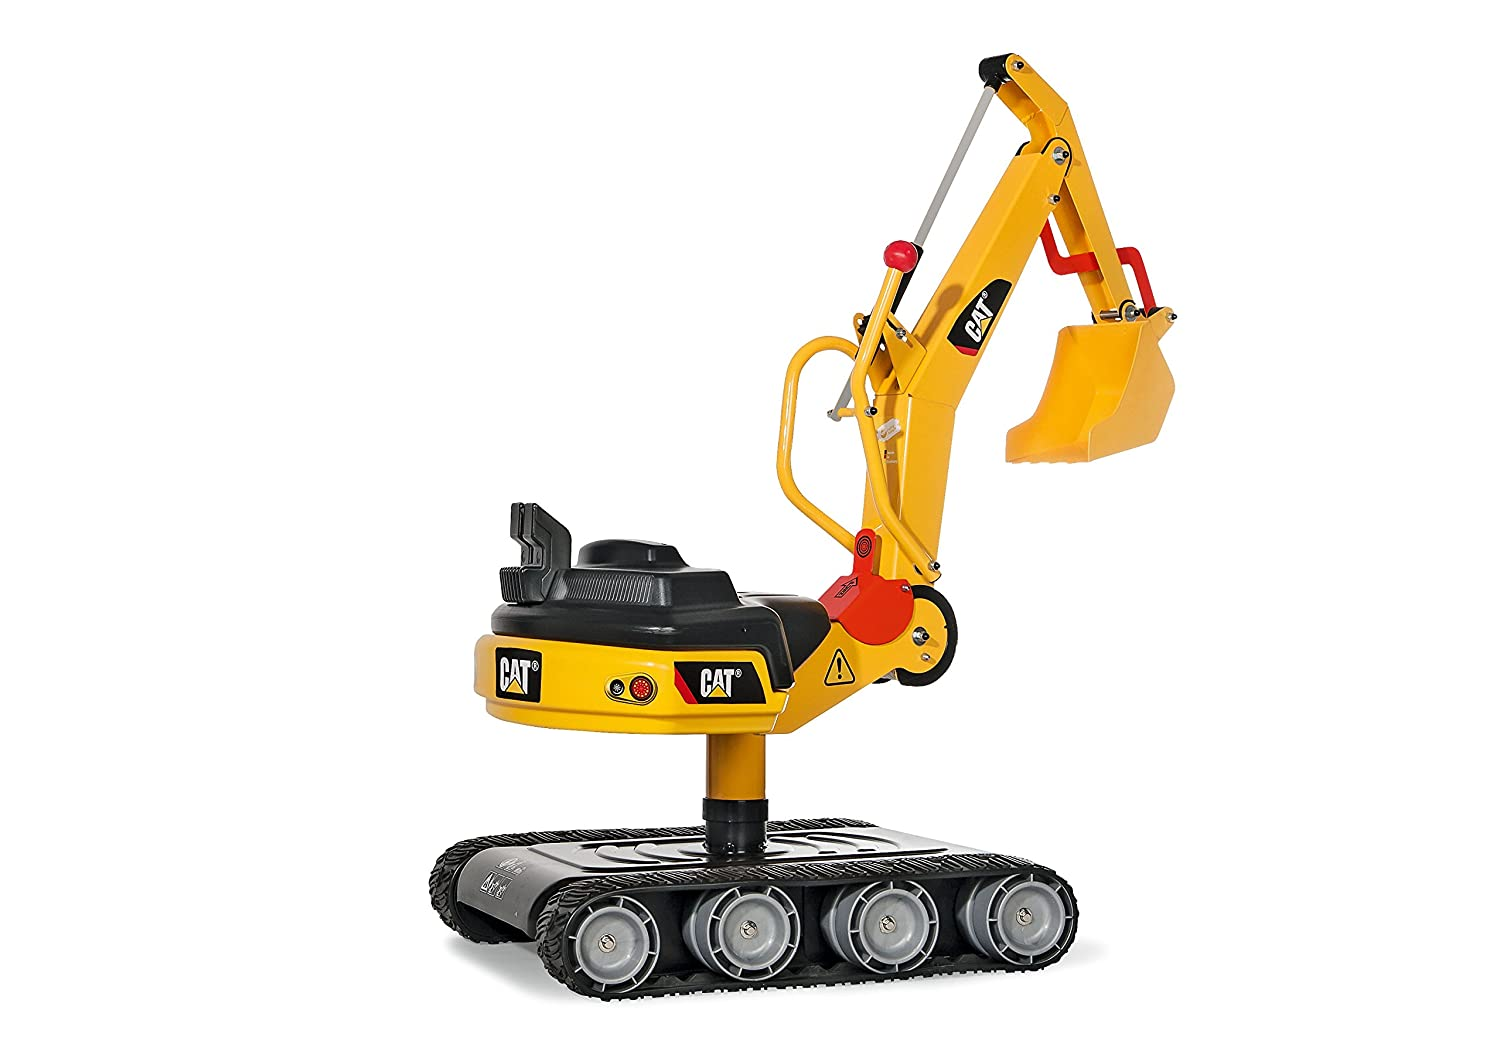 A great construction toy - Caterpillar Excavator for your little worker.